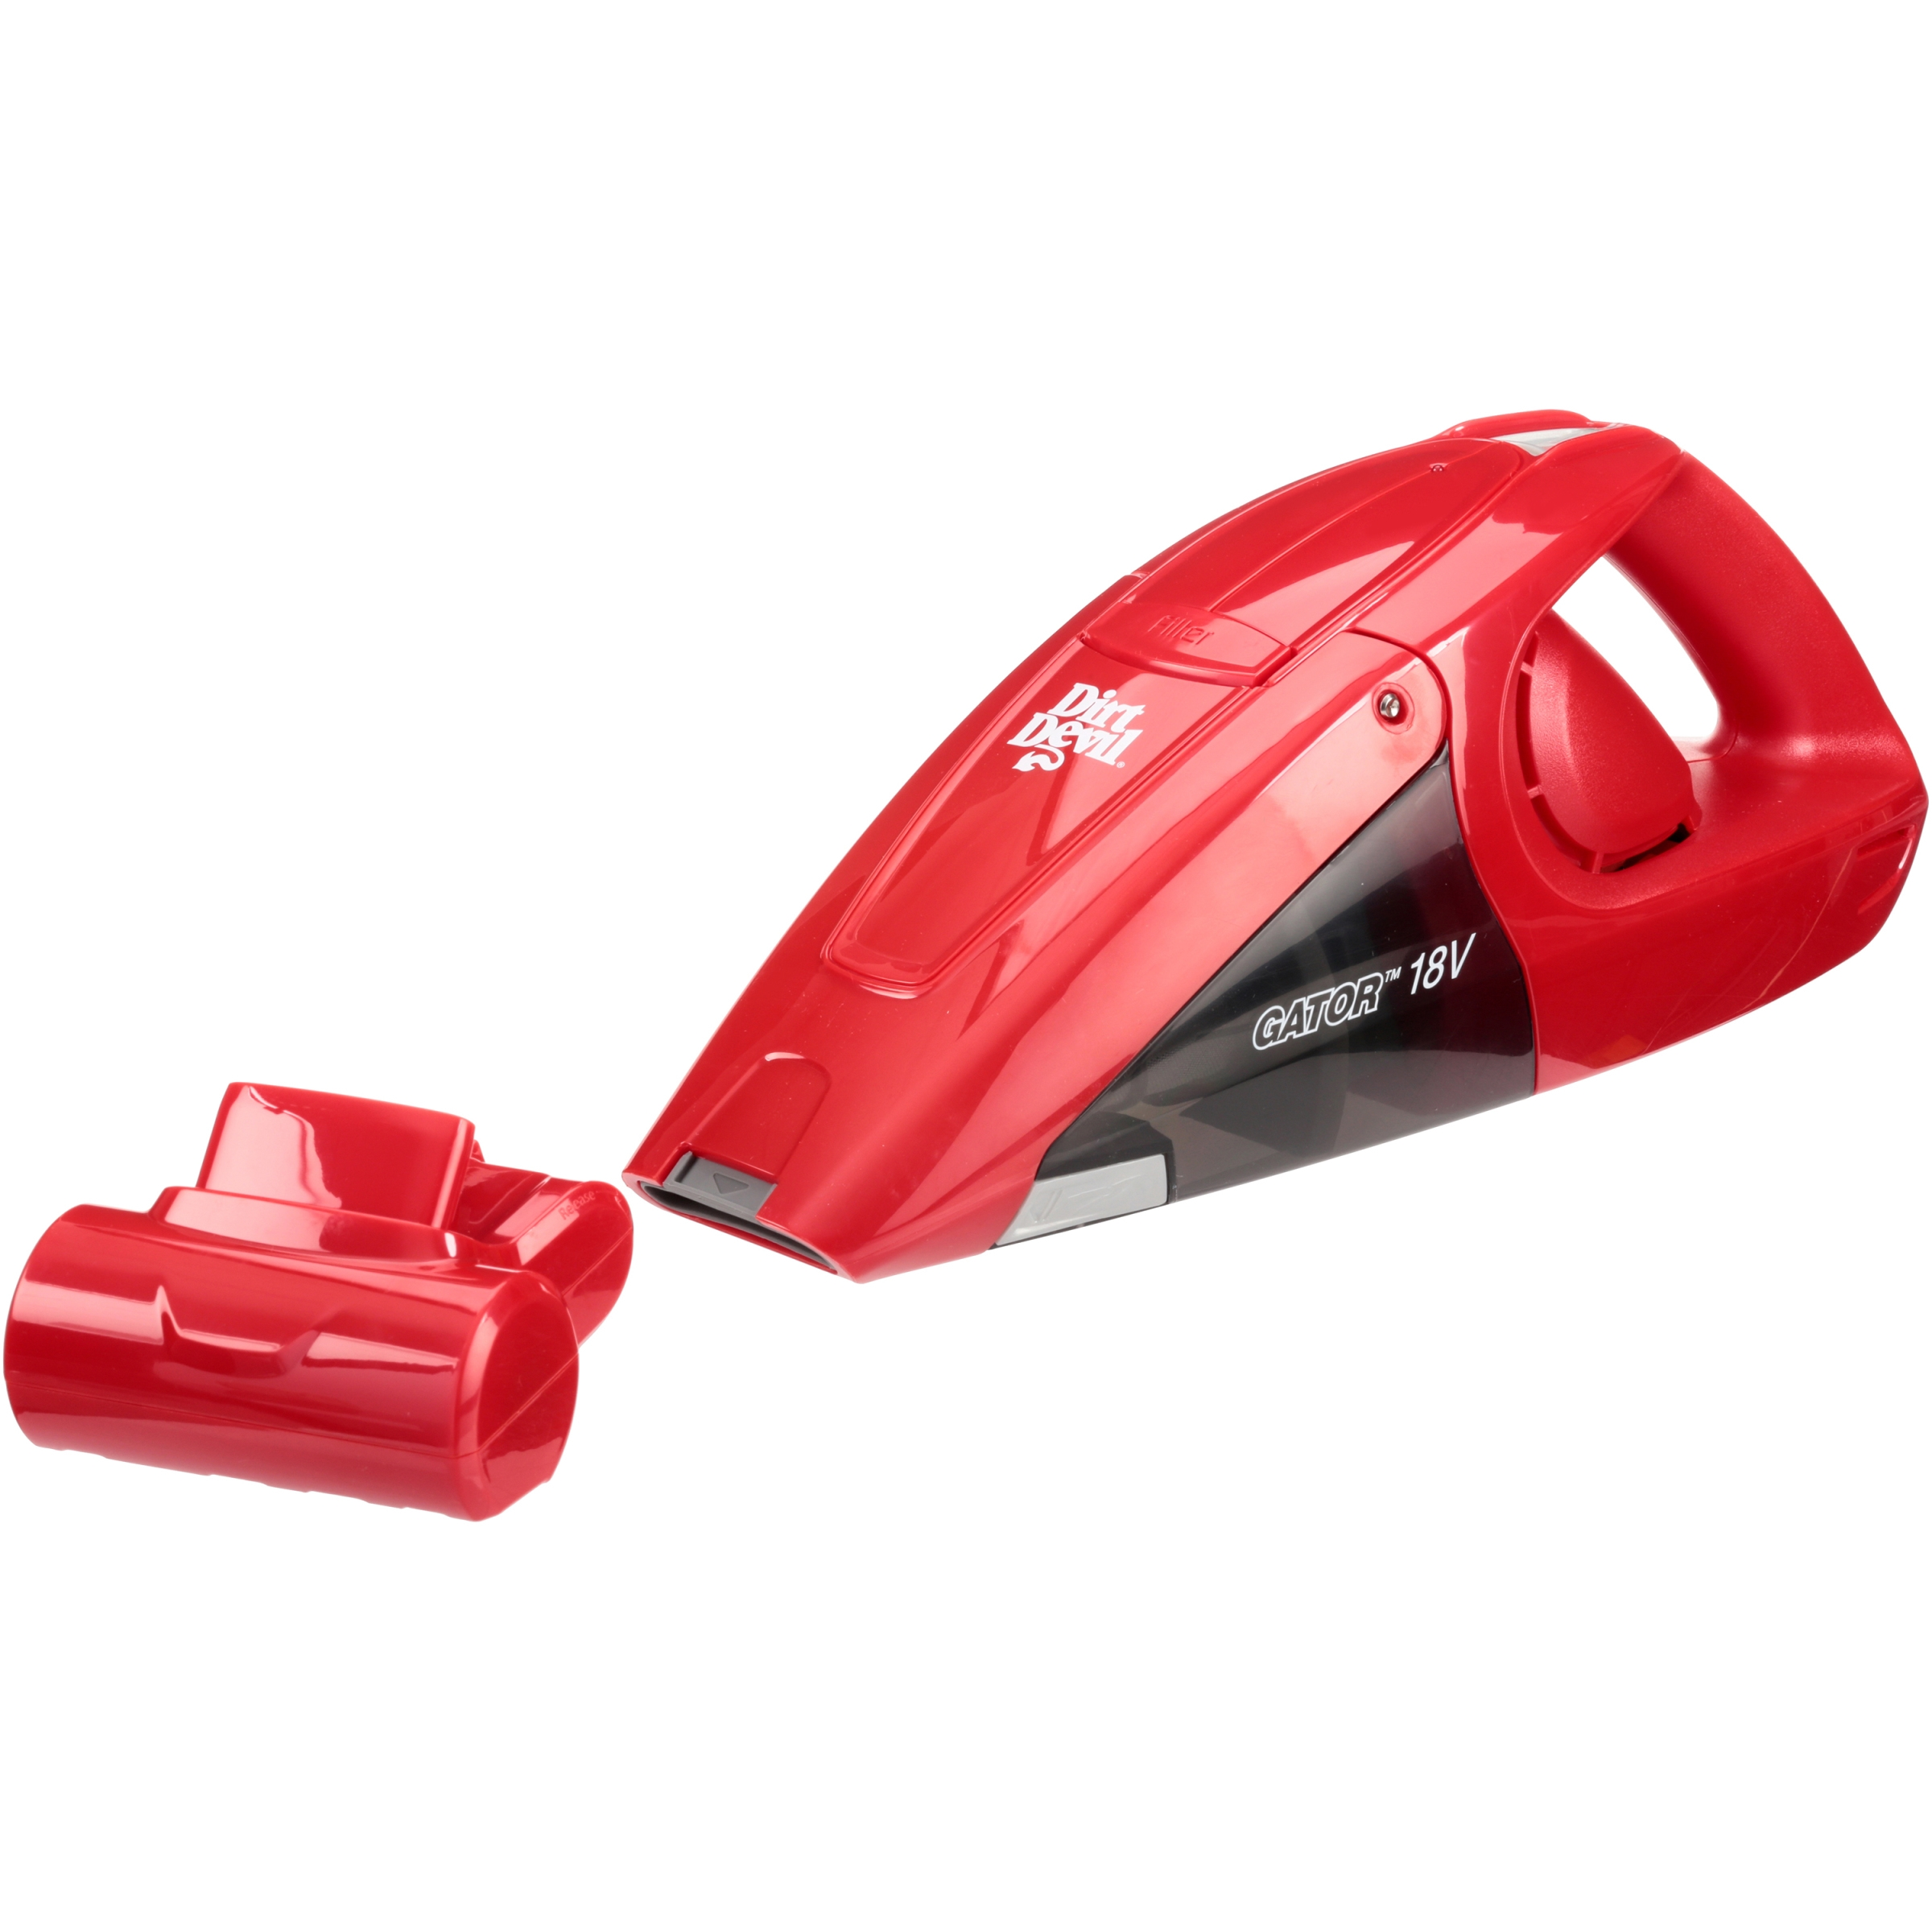 Dirt Devil® Gator™ 18V Cordless Hand Vac with Brushroll